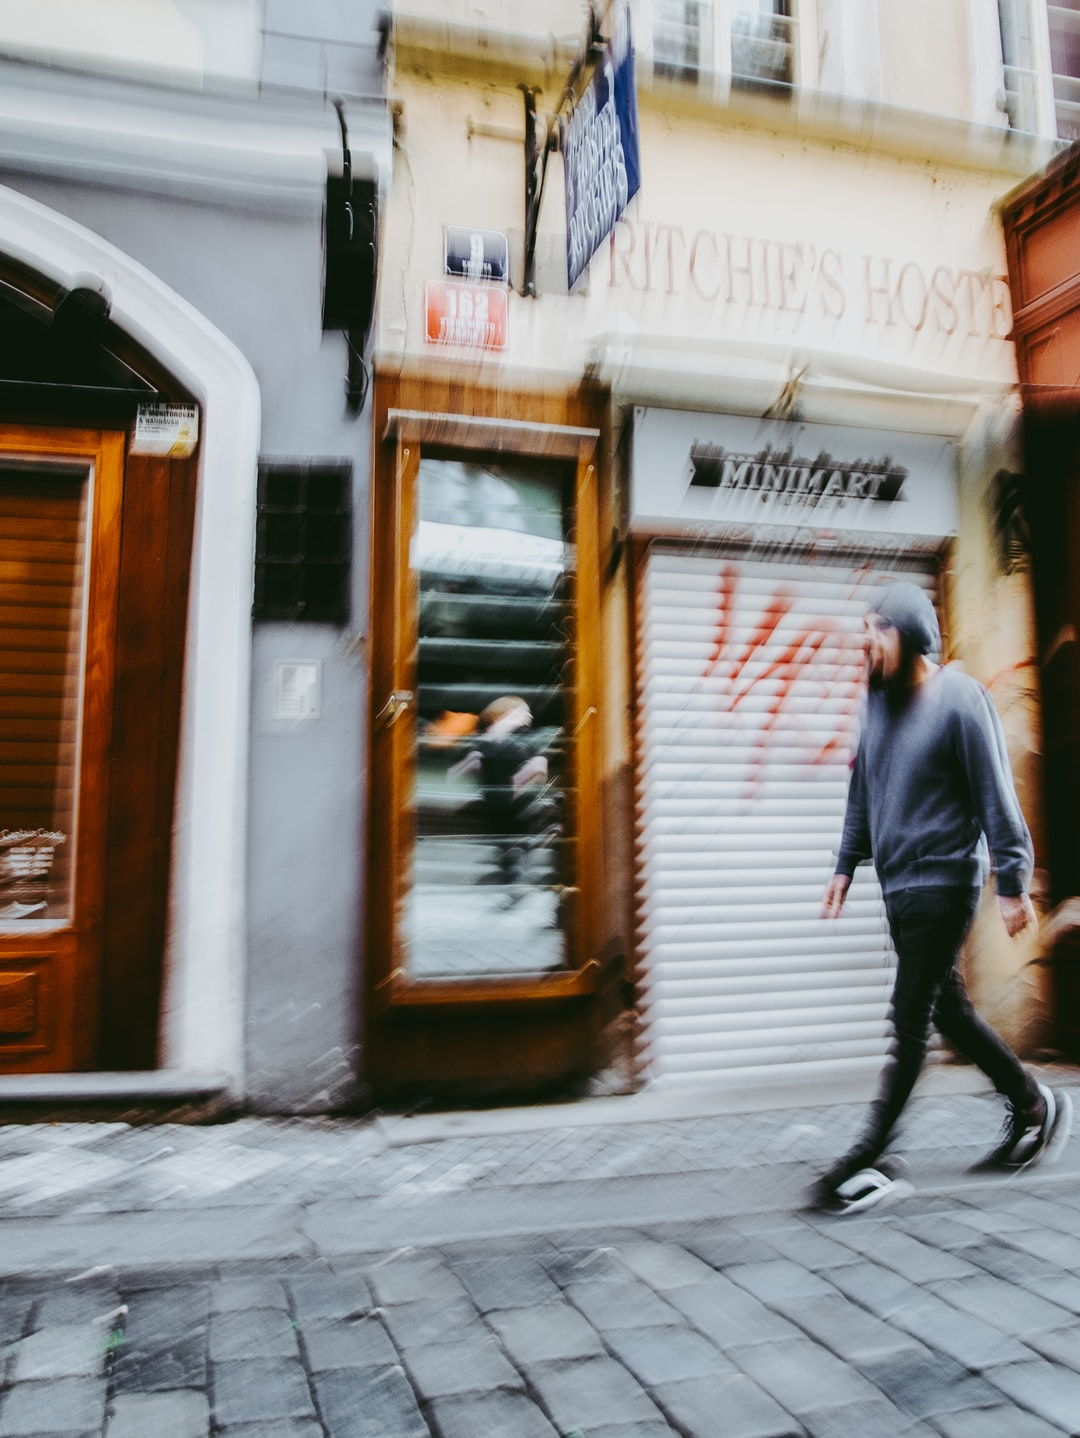 Blurred  image of  a man walking down the street.